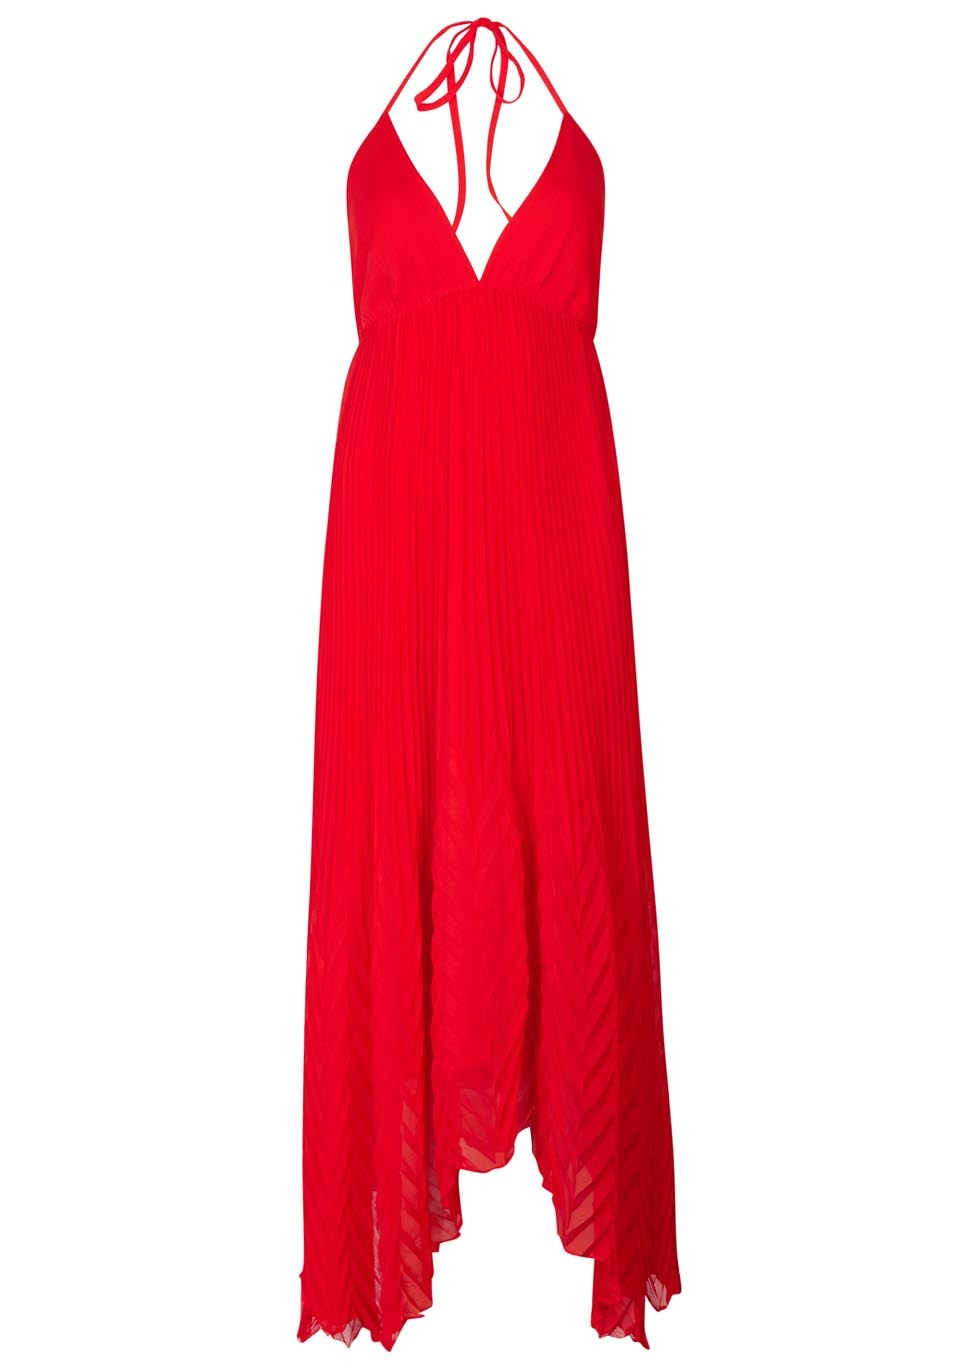 Adalyn Red Pleated Chiffon Maxi Dress - fit: empire; pattern: plain; sleeve style: sleeveless; style: maxi dress; length: ankle length; neckline: low halter neck; predominant colour: true red; occasions: evening; fibres: polyester/polyamide - 100%; sleeve length: sleeveless; pattern type: fabric; texture group: other - light to midweight; season: s/s 2016; wardrobe: event